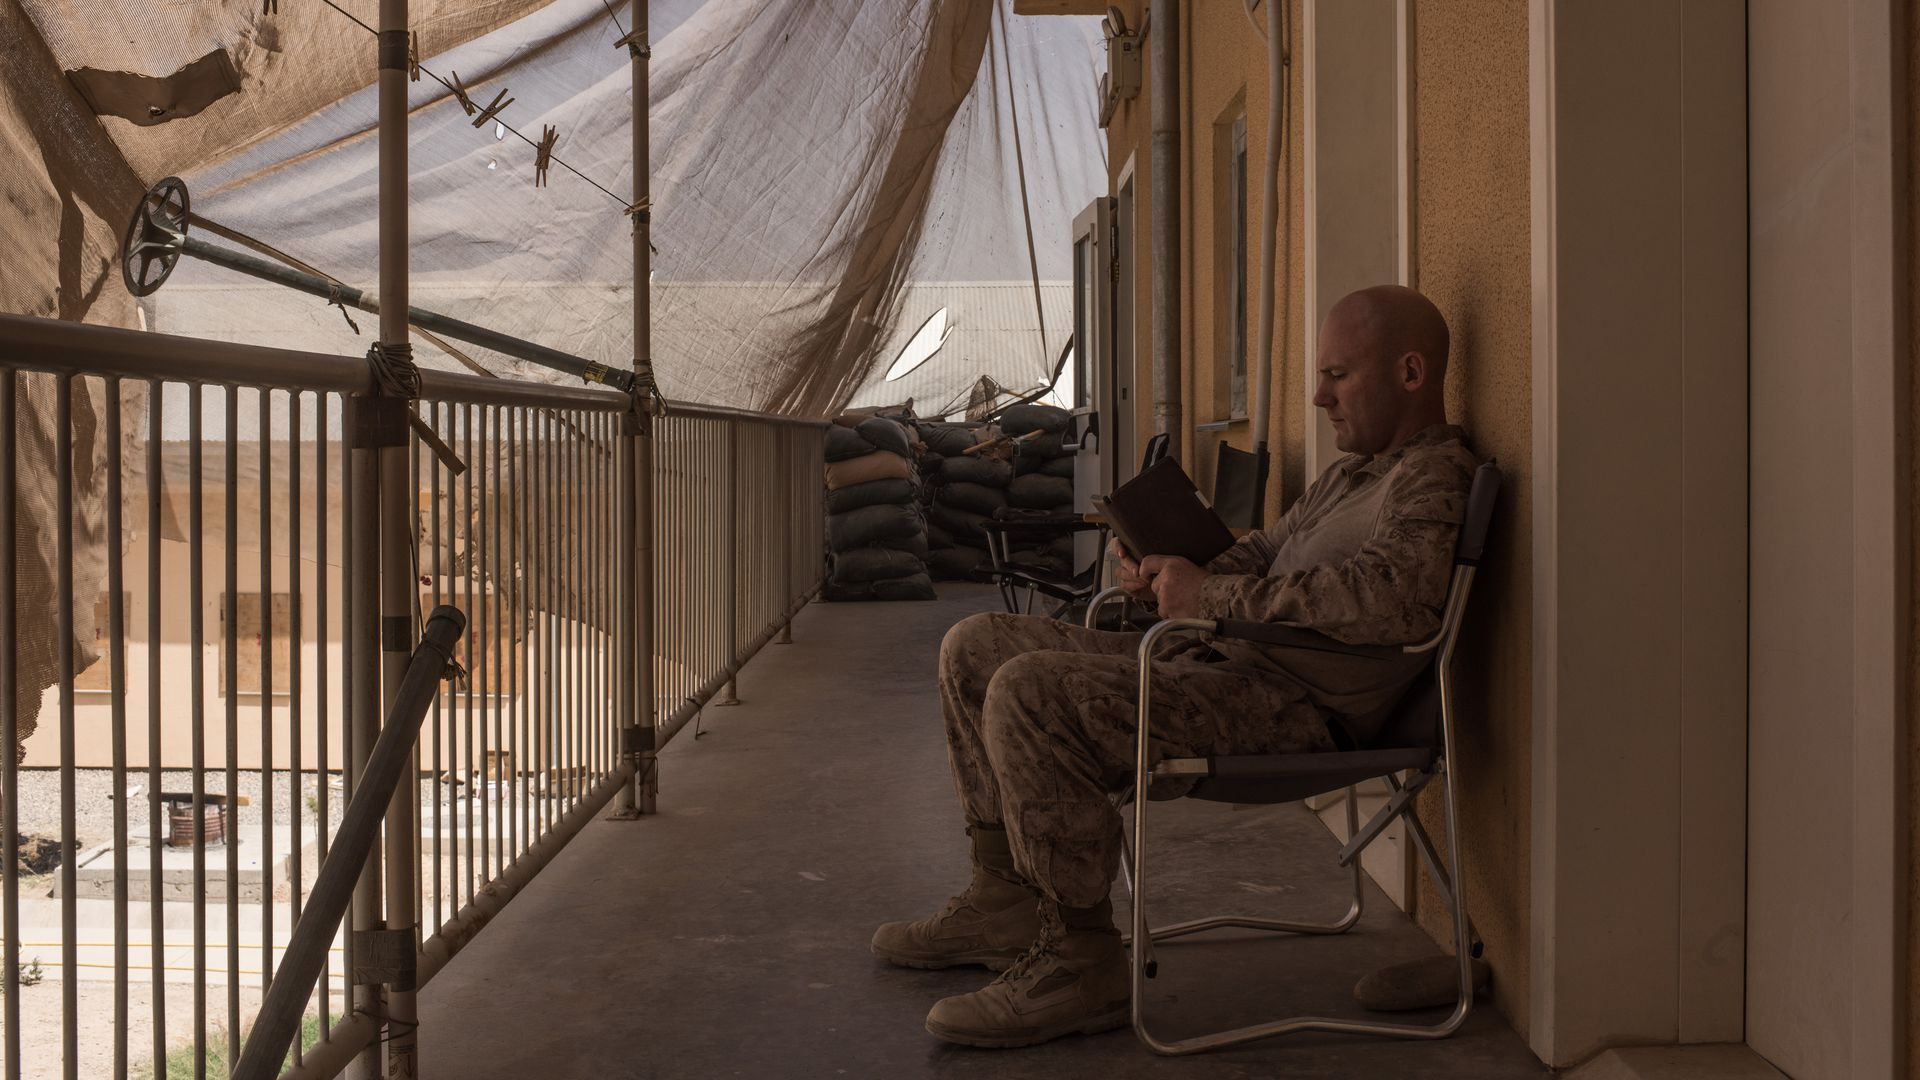 A U.S. marine reads a book sitting in a chair.